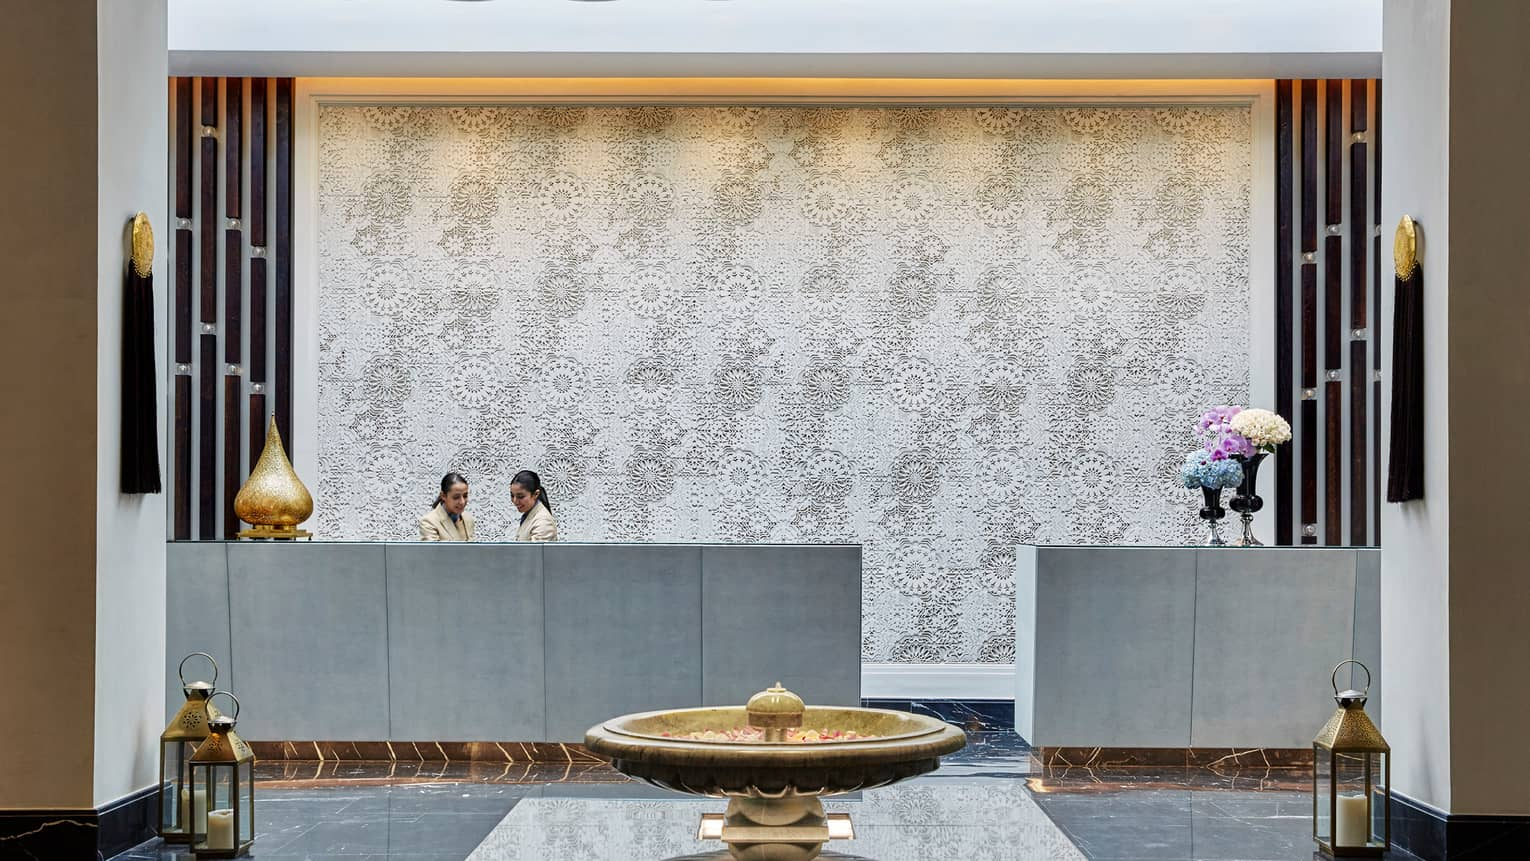 Staff at hotel reception desk in lobby with white mosaic backdrop